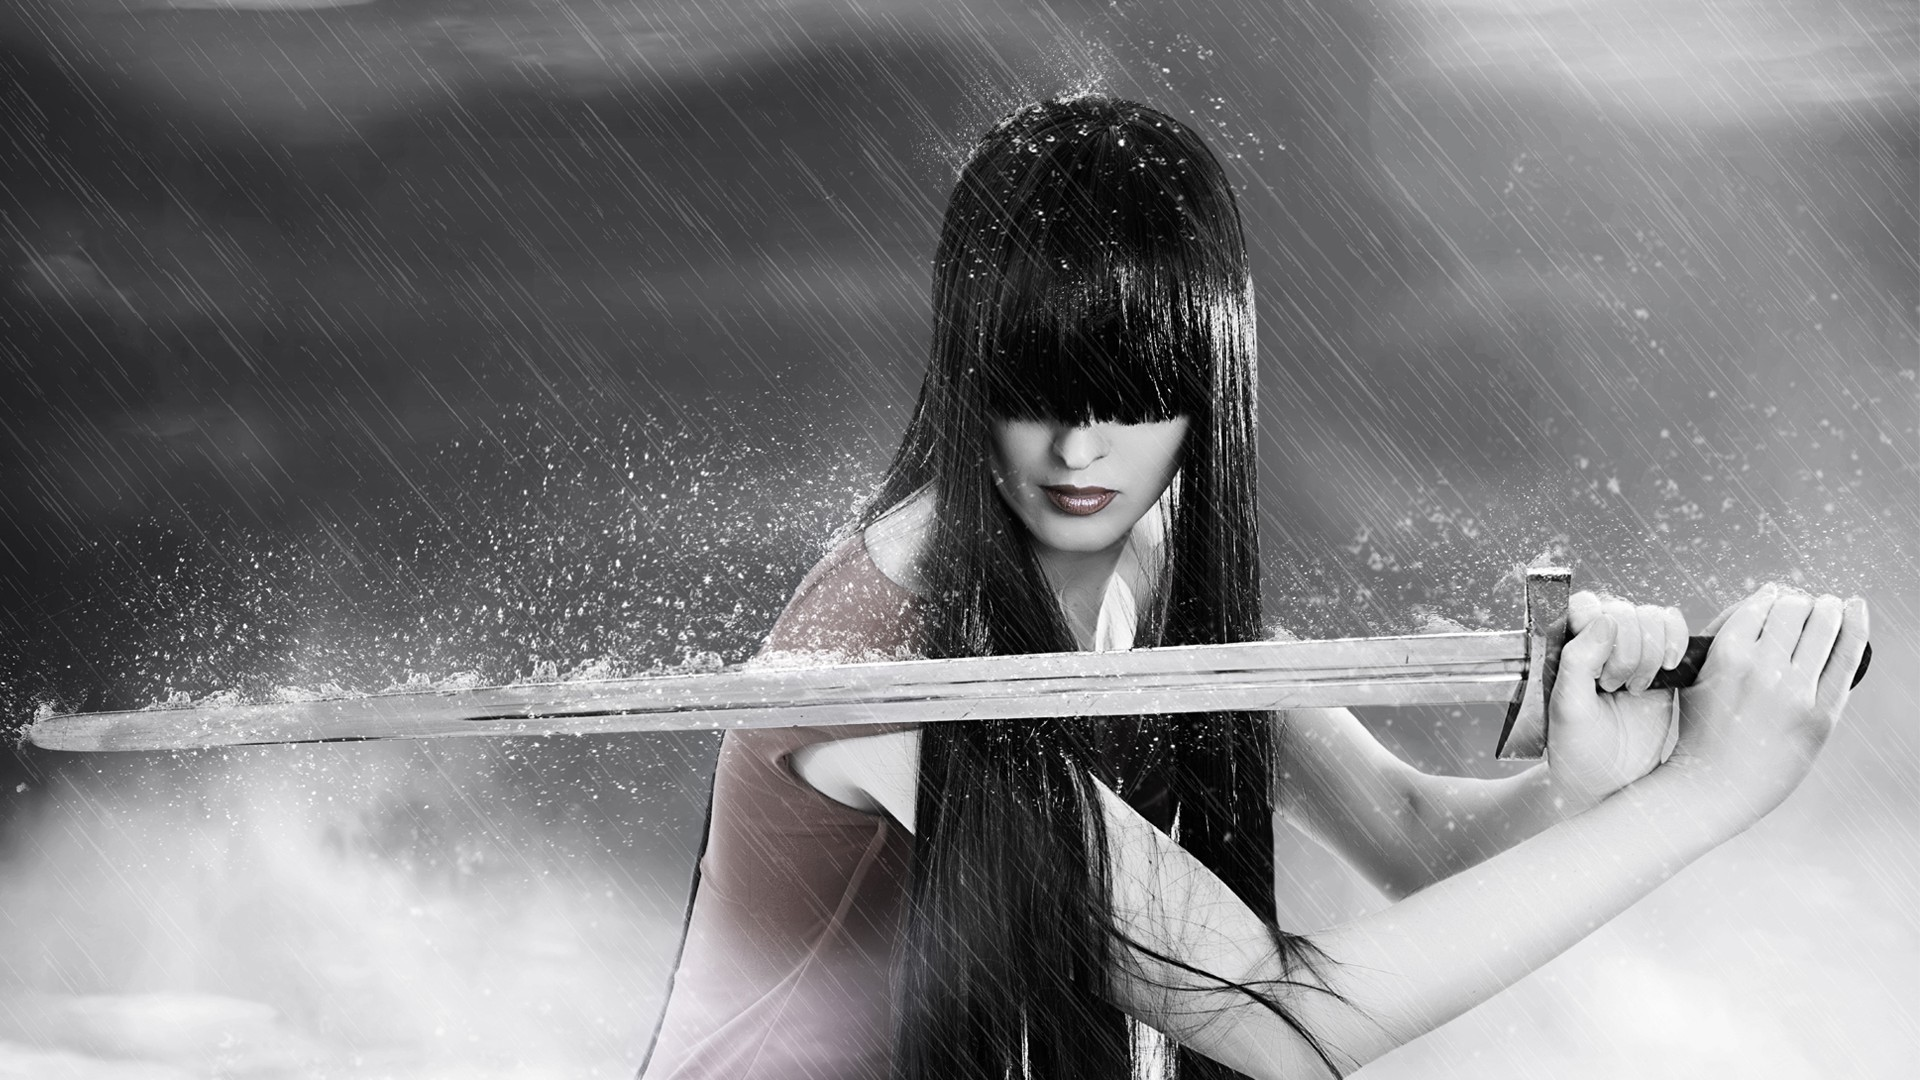 Girl with a sword in the rain